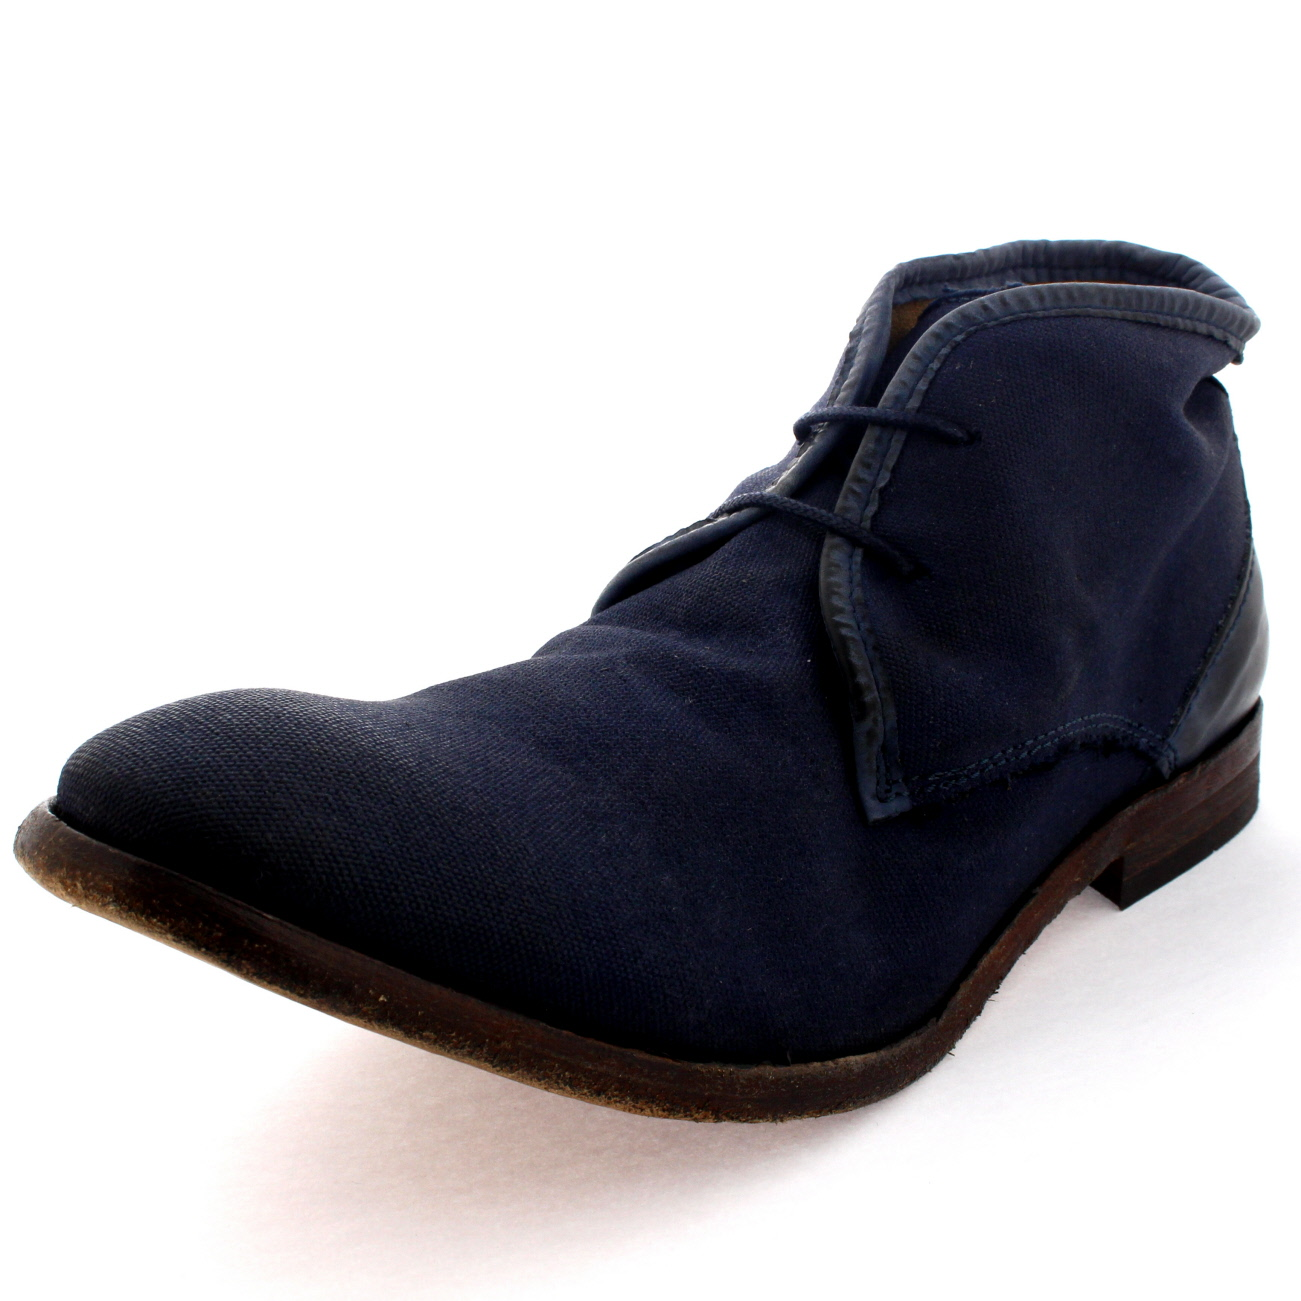 mens h by hudson cruise ankle boot canvas laced work